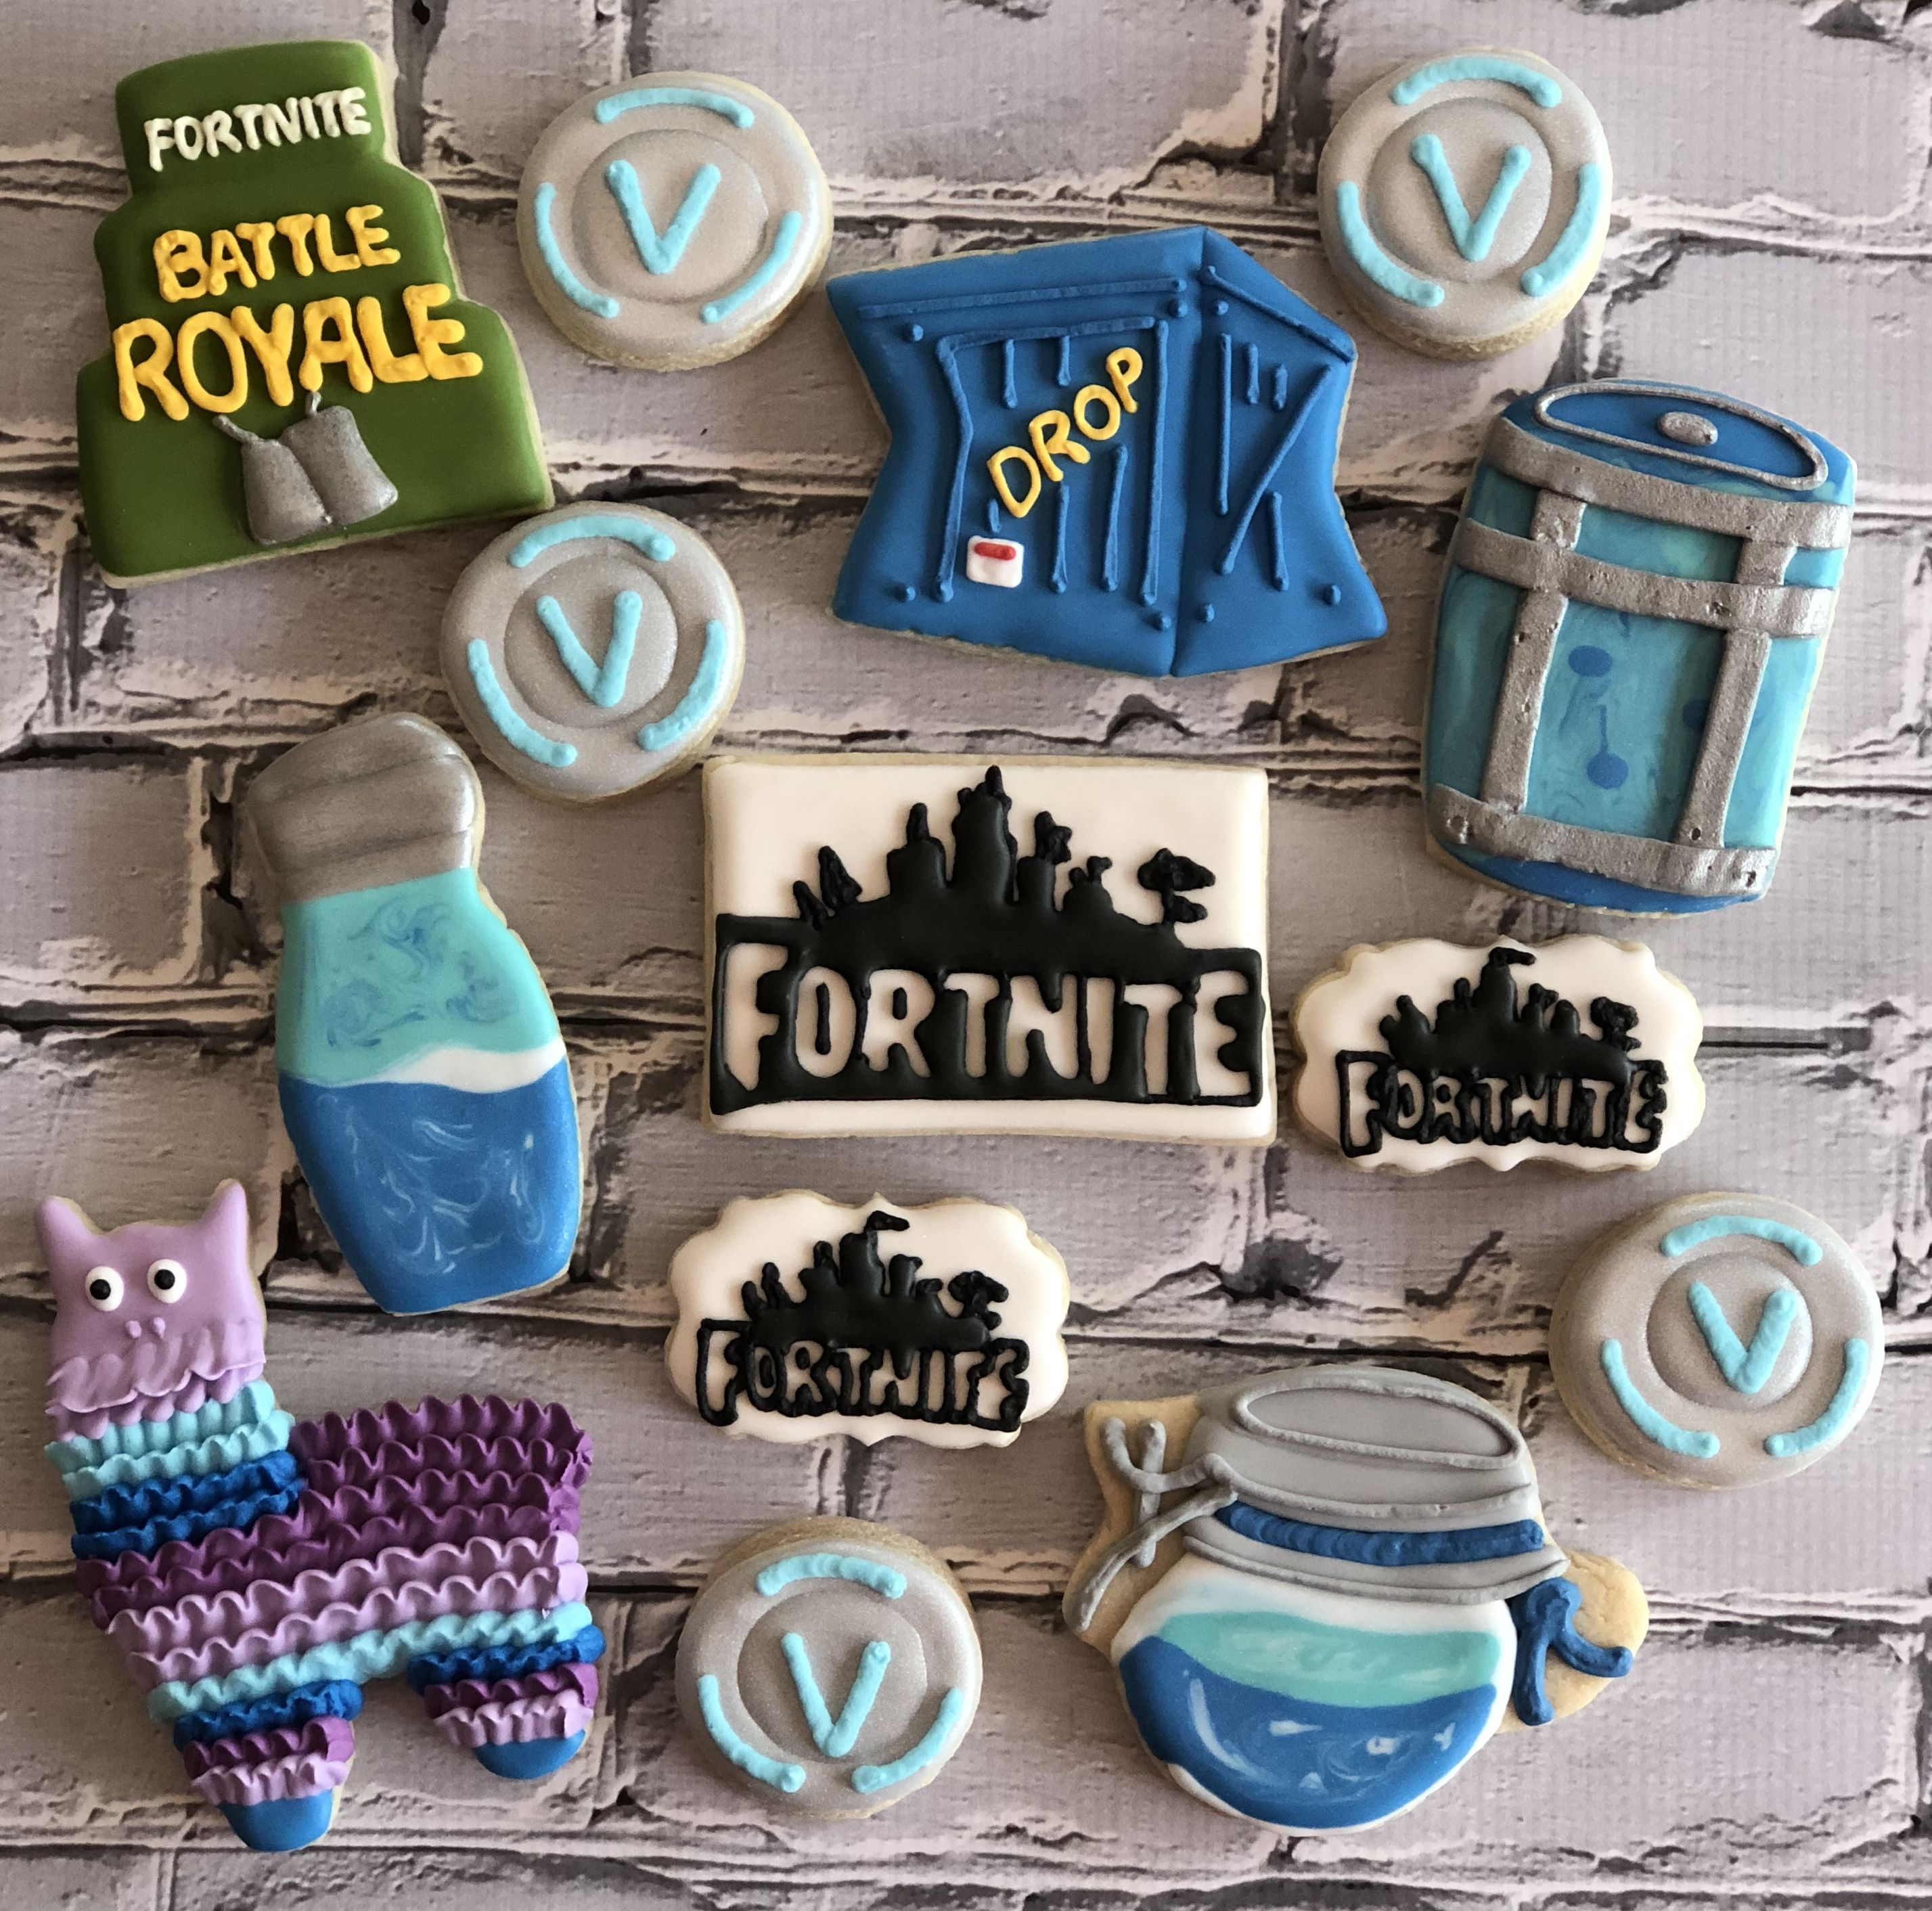 Fortnite Cookies For More Info On How To Order Or To See